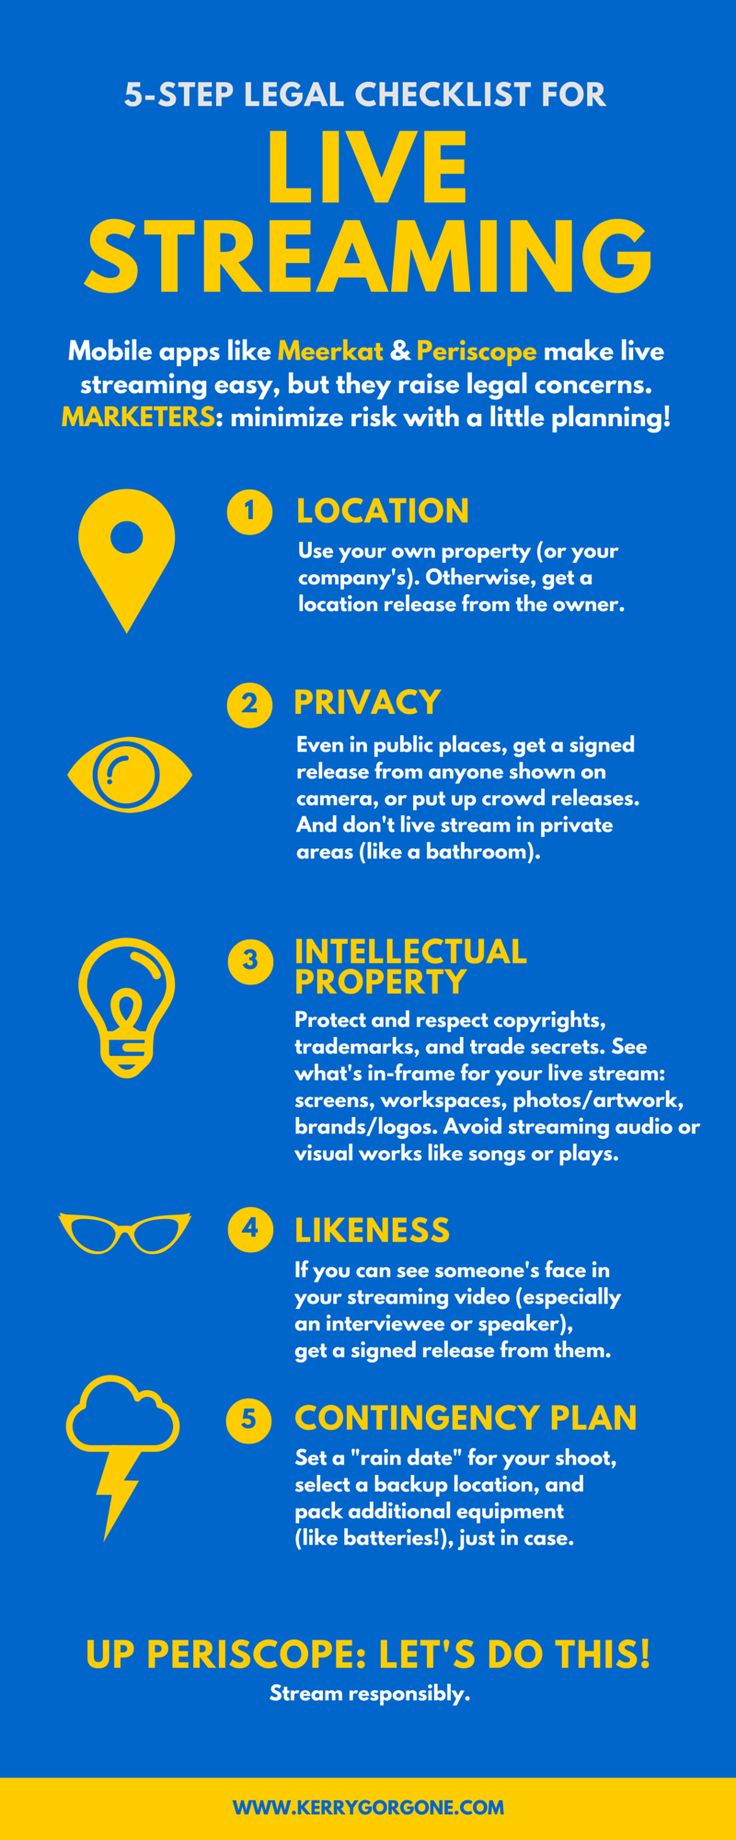 What Are 5 Legal Considerations To Reduce Risk When Live Streaming With #Meerkat And #Periscope? #infographic